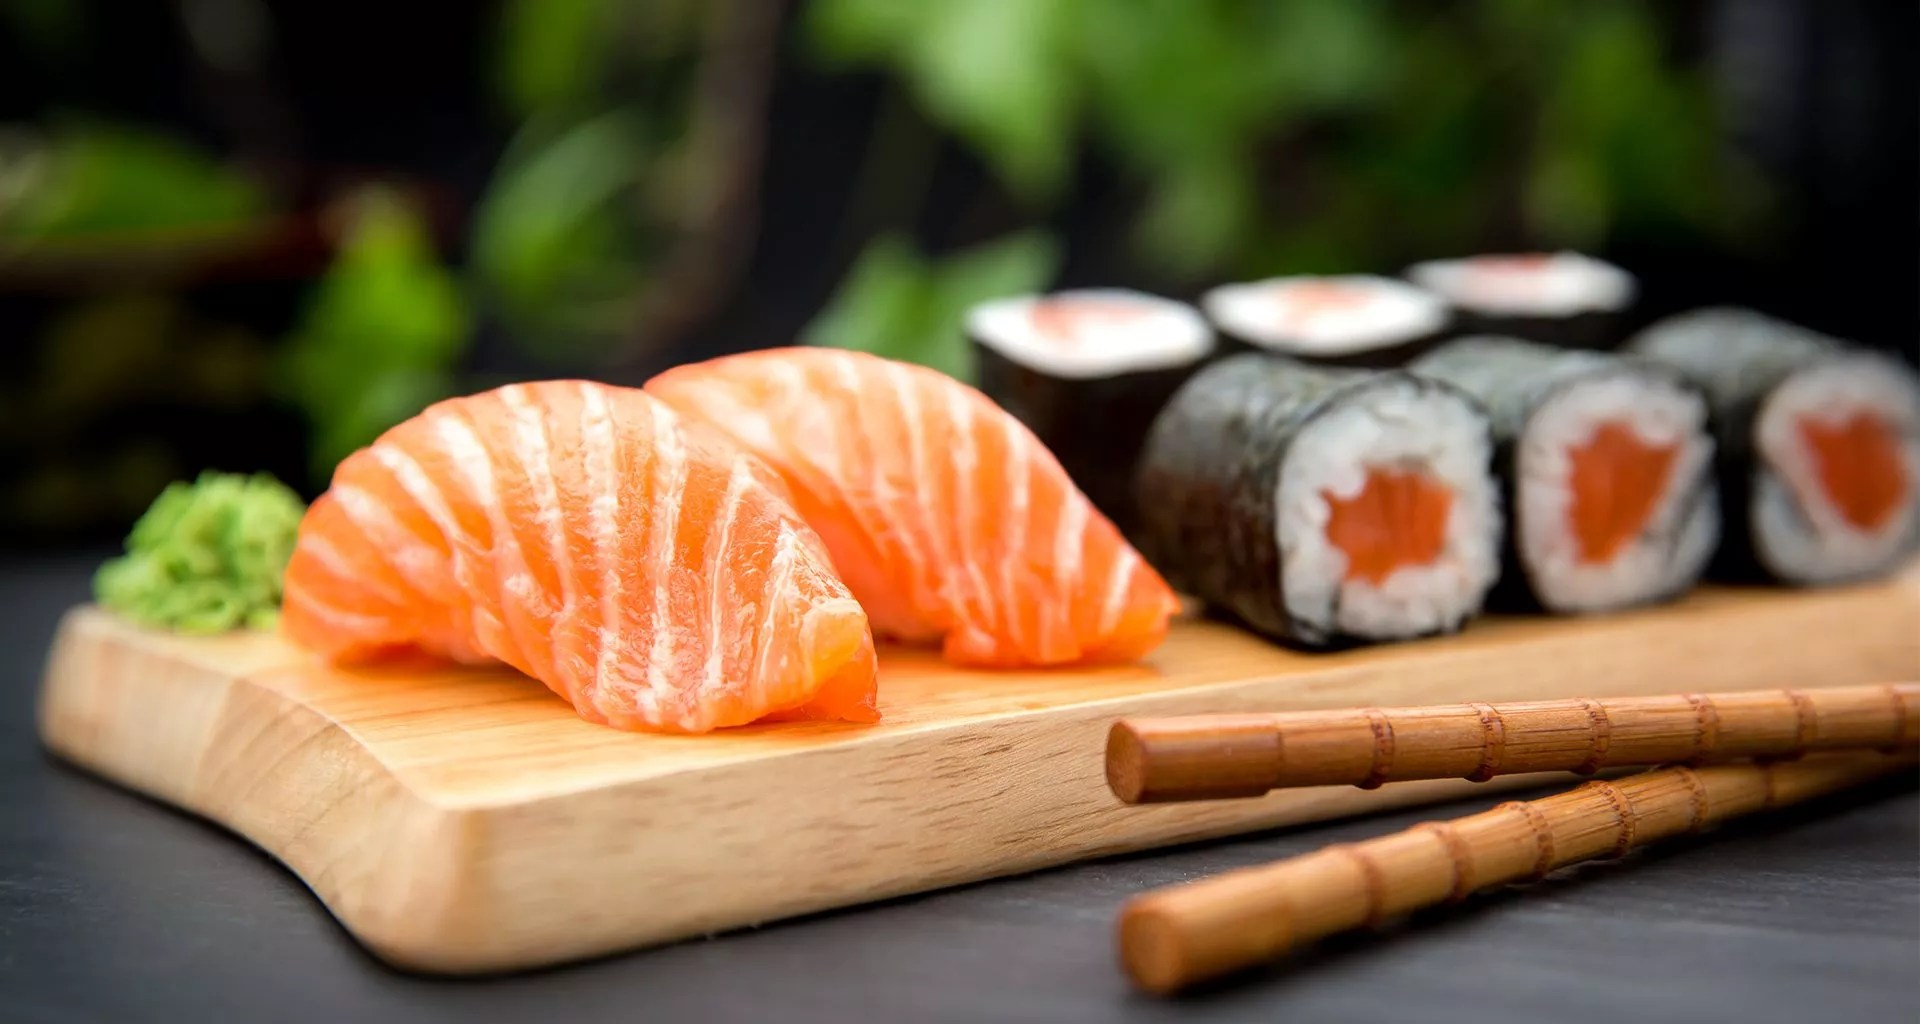 Japan Sushi The Story Of Japanese Cuisine - Learn About Japanese Food